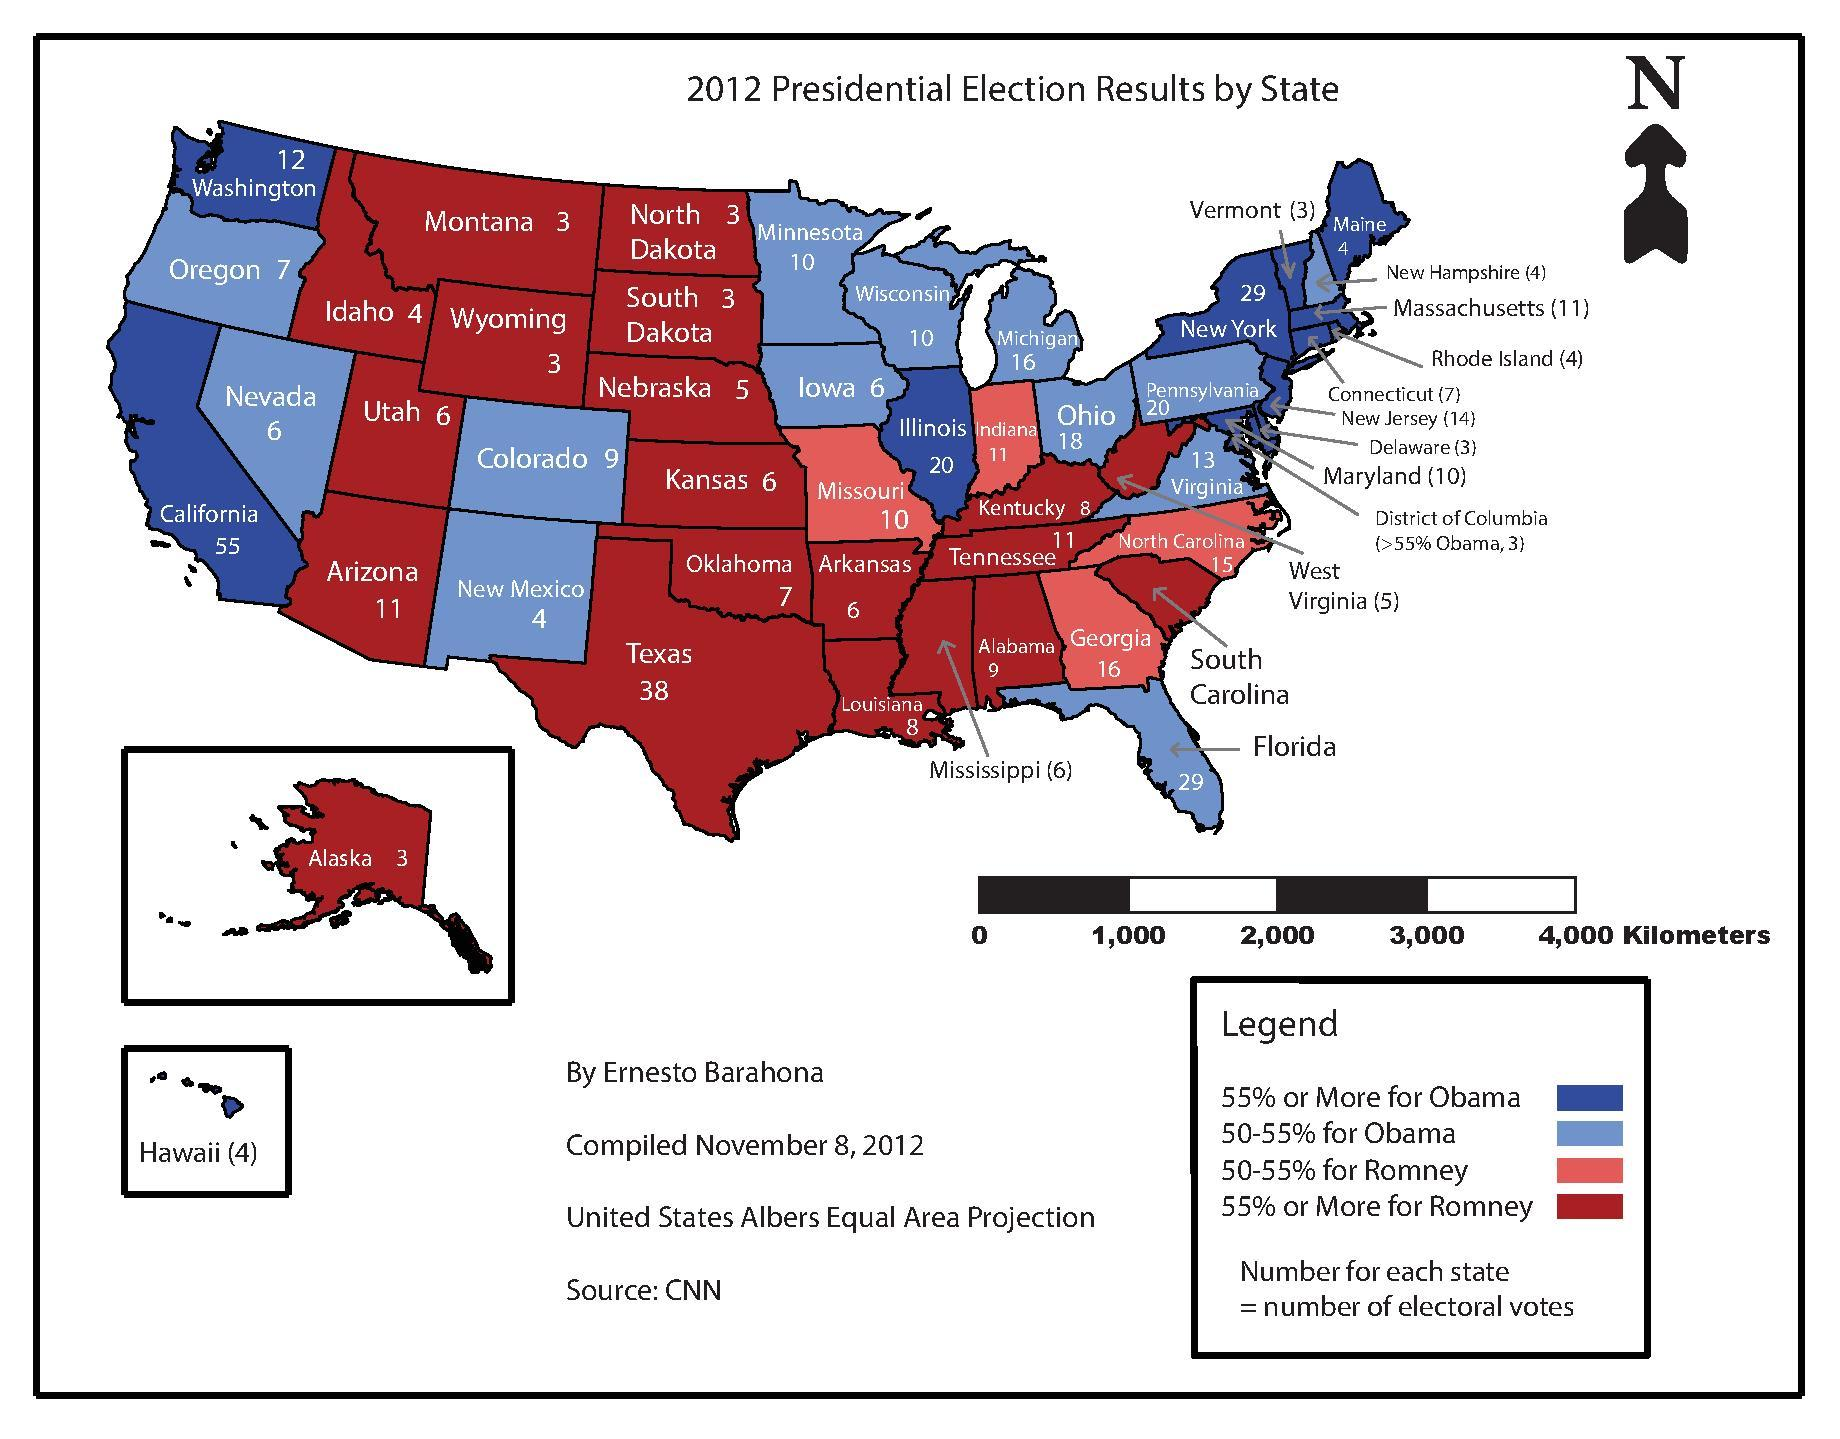 PDF GRATIS 2012 ELECTION EBOOK